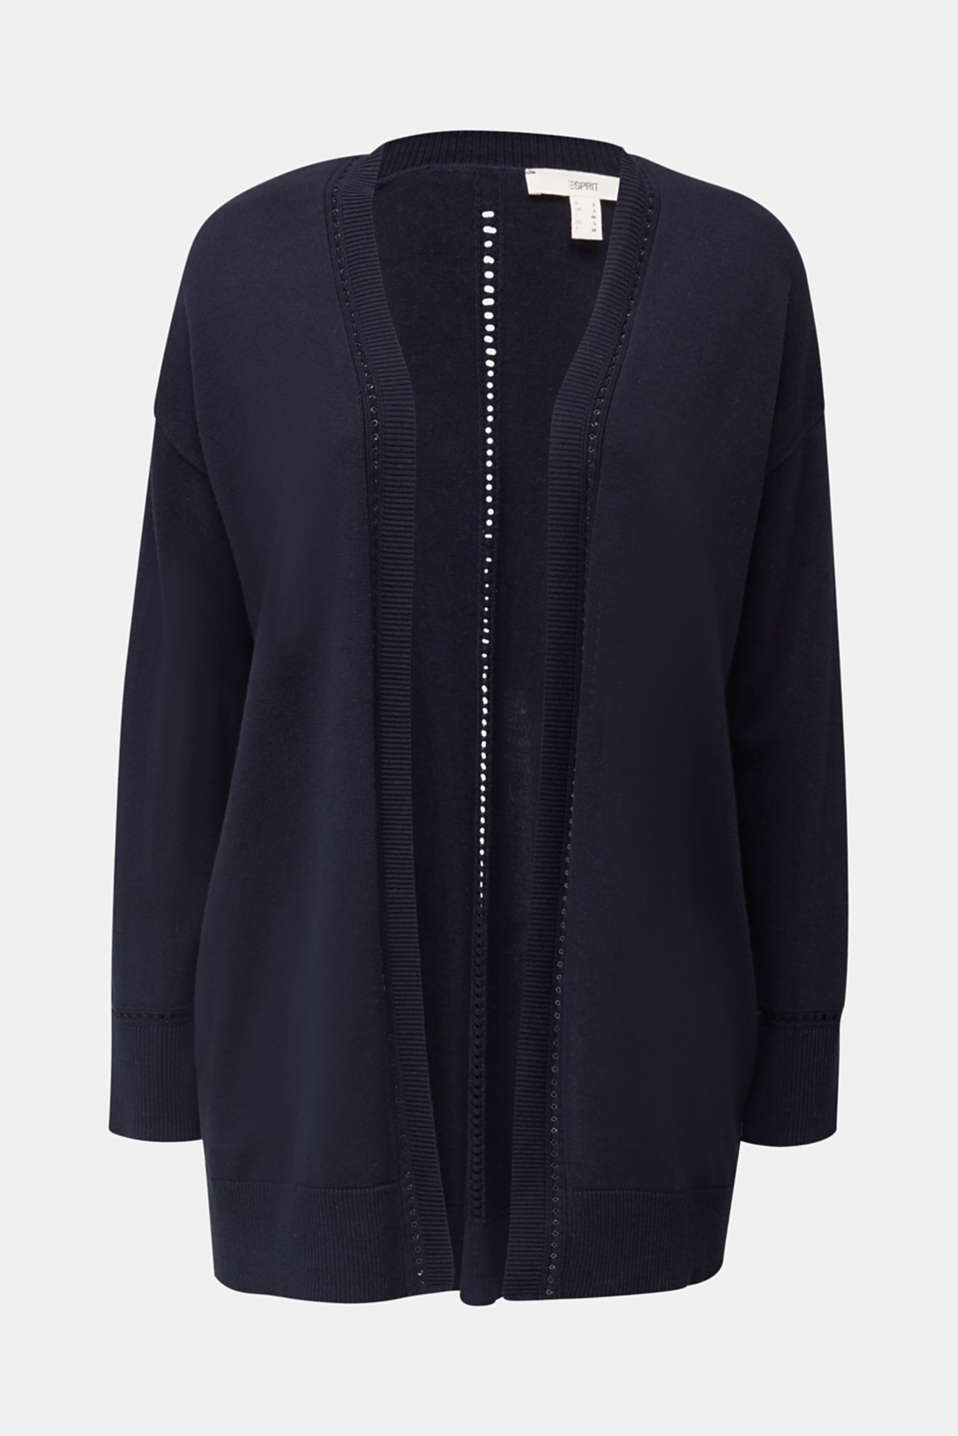 Cardigan with open-work pattern details, NAVY, detail image number 6